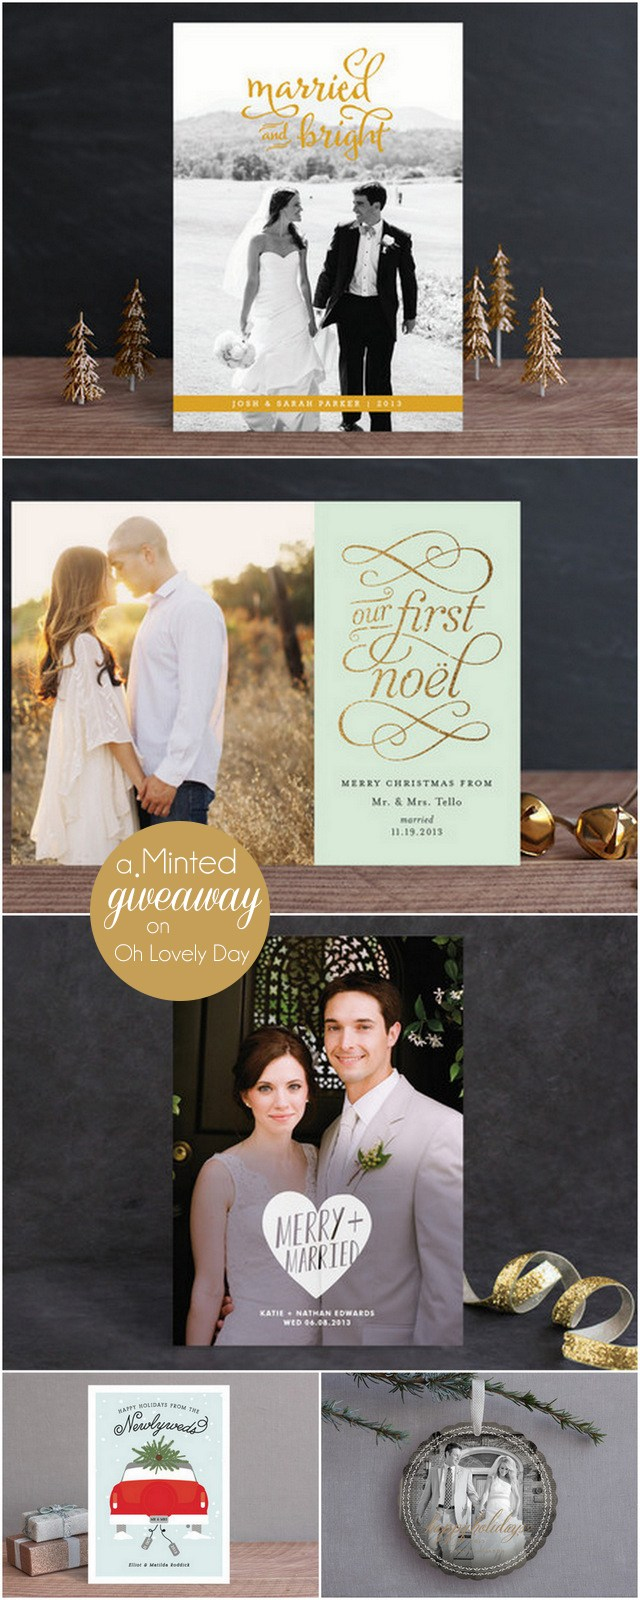 $250 Minted Giveaway on Oh Lovely Day